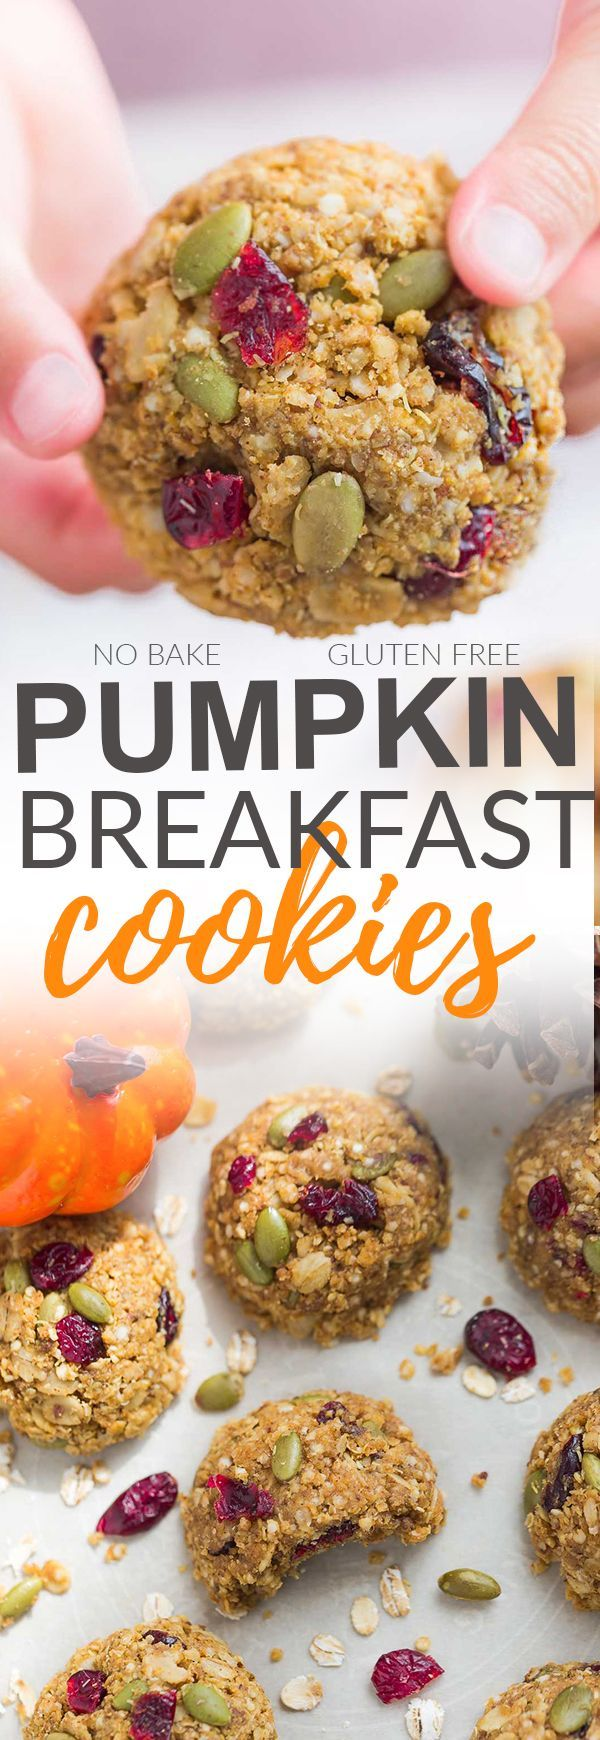 These Pumpkin Breakfast Cookies are the perfect easy breakfast for on the go. Best of all, this recipe is great if you feel like a no bake cookie when it's too hot to turn on the oven or you can bake them for 10 minutes for a warm treat. They're also load